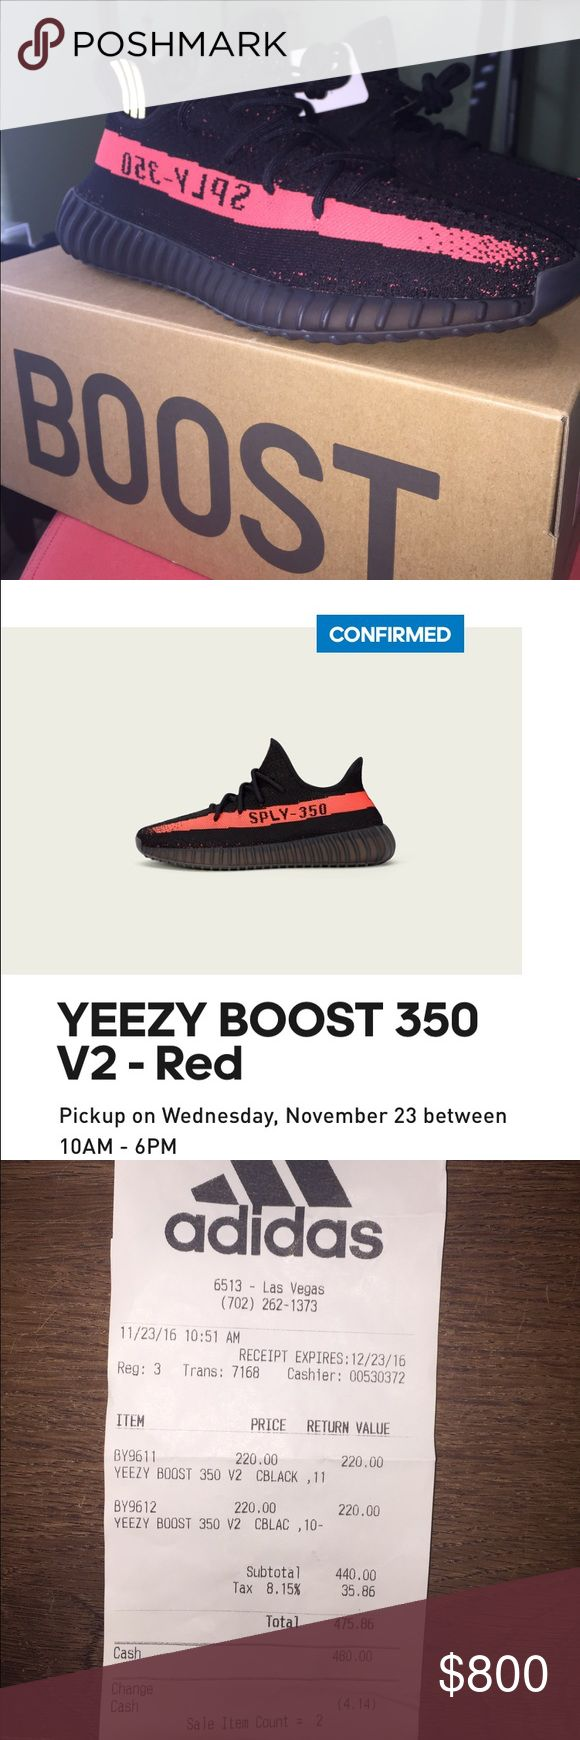 Adidas Yeezy Boost 350 V2 I have a brand new, store bought pair of Red Yeezy 350. These are the most recent pair, and I got them from reserving on the adidas Confirmed app. I got them November 23, 2016 on release day for their retail price of $220. I have original receipt and box/tags. Everything is brand new. If you having any questions please let me know. The shoes are size 10 1/2 and are the RED colorway. Adidas Shoes Athletic Shoes